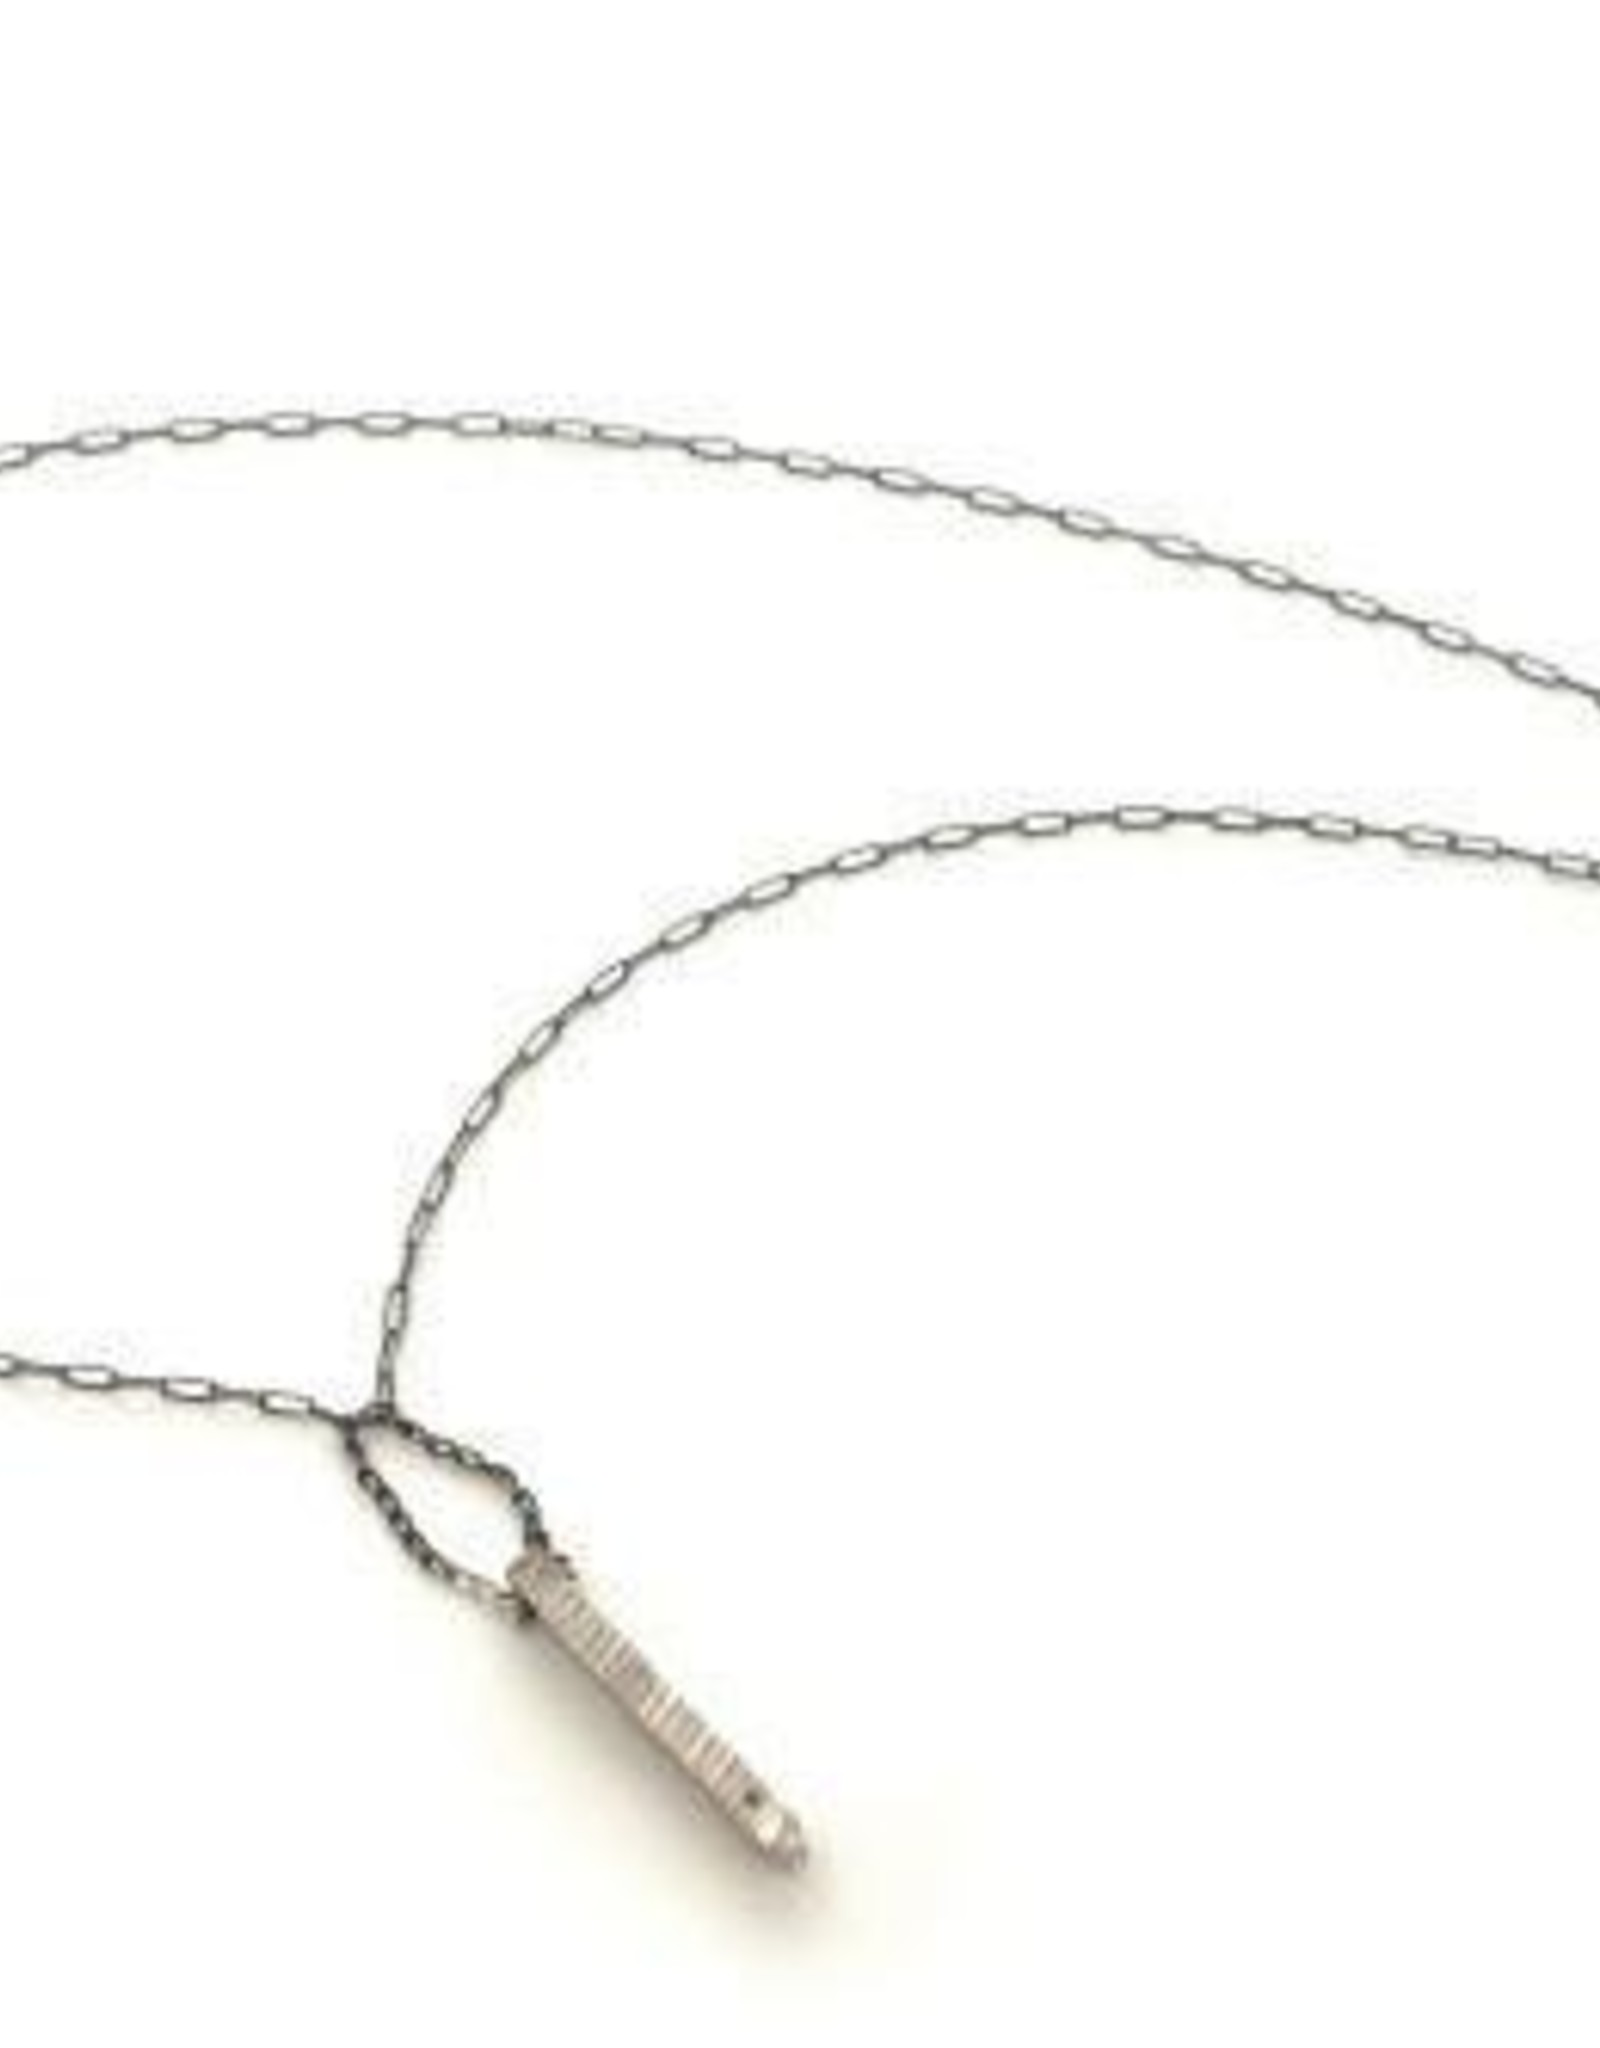 Chikahisa Studio Stonehenge Black Diamond Stick Necklace - Sterling Silver